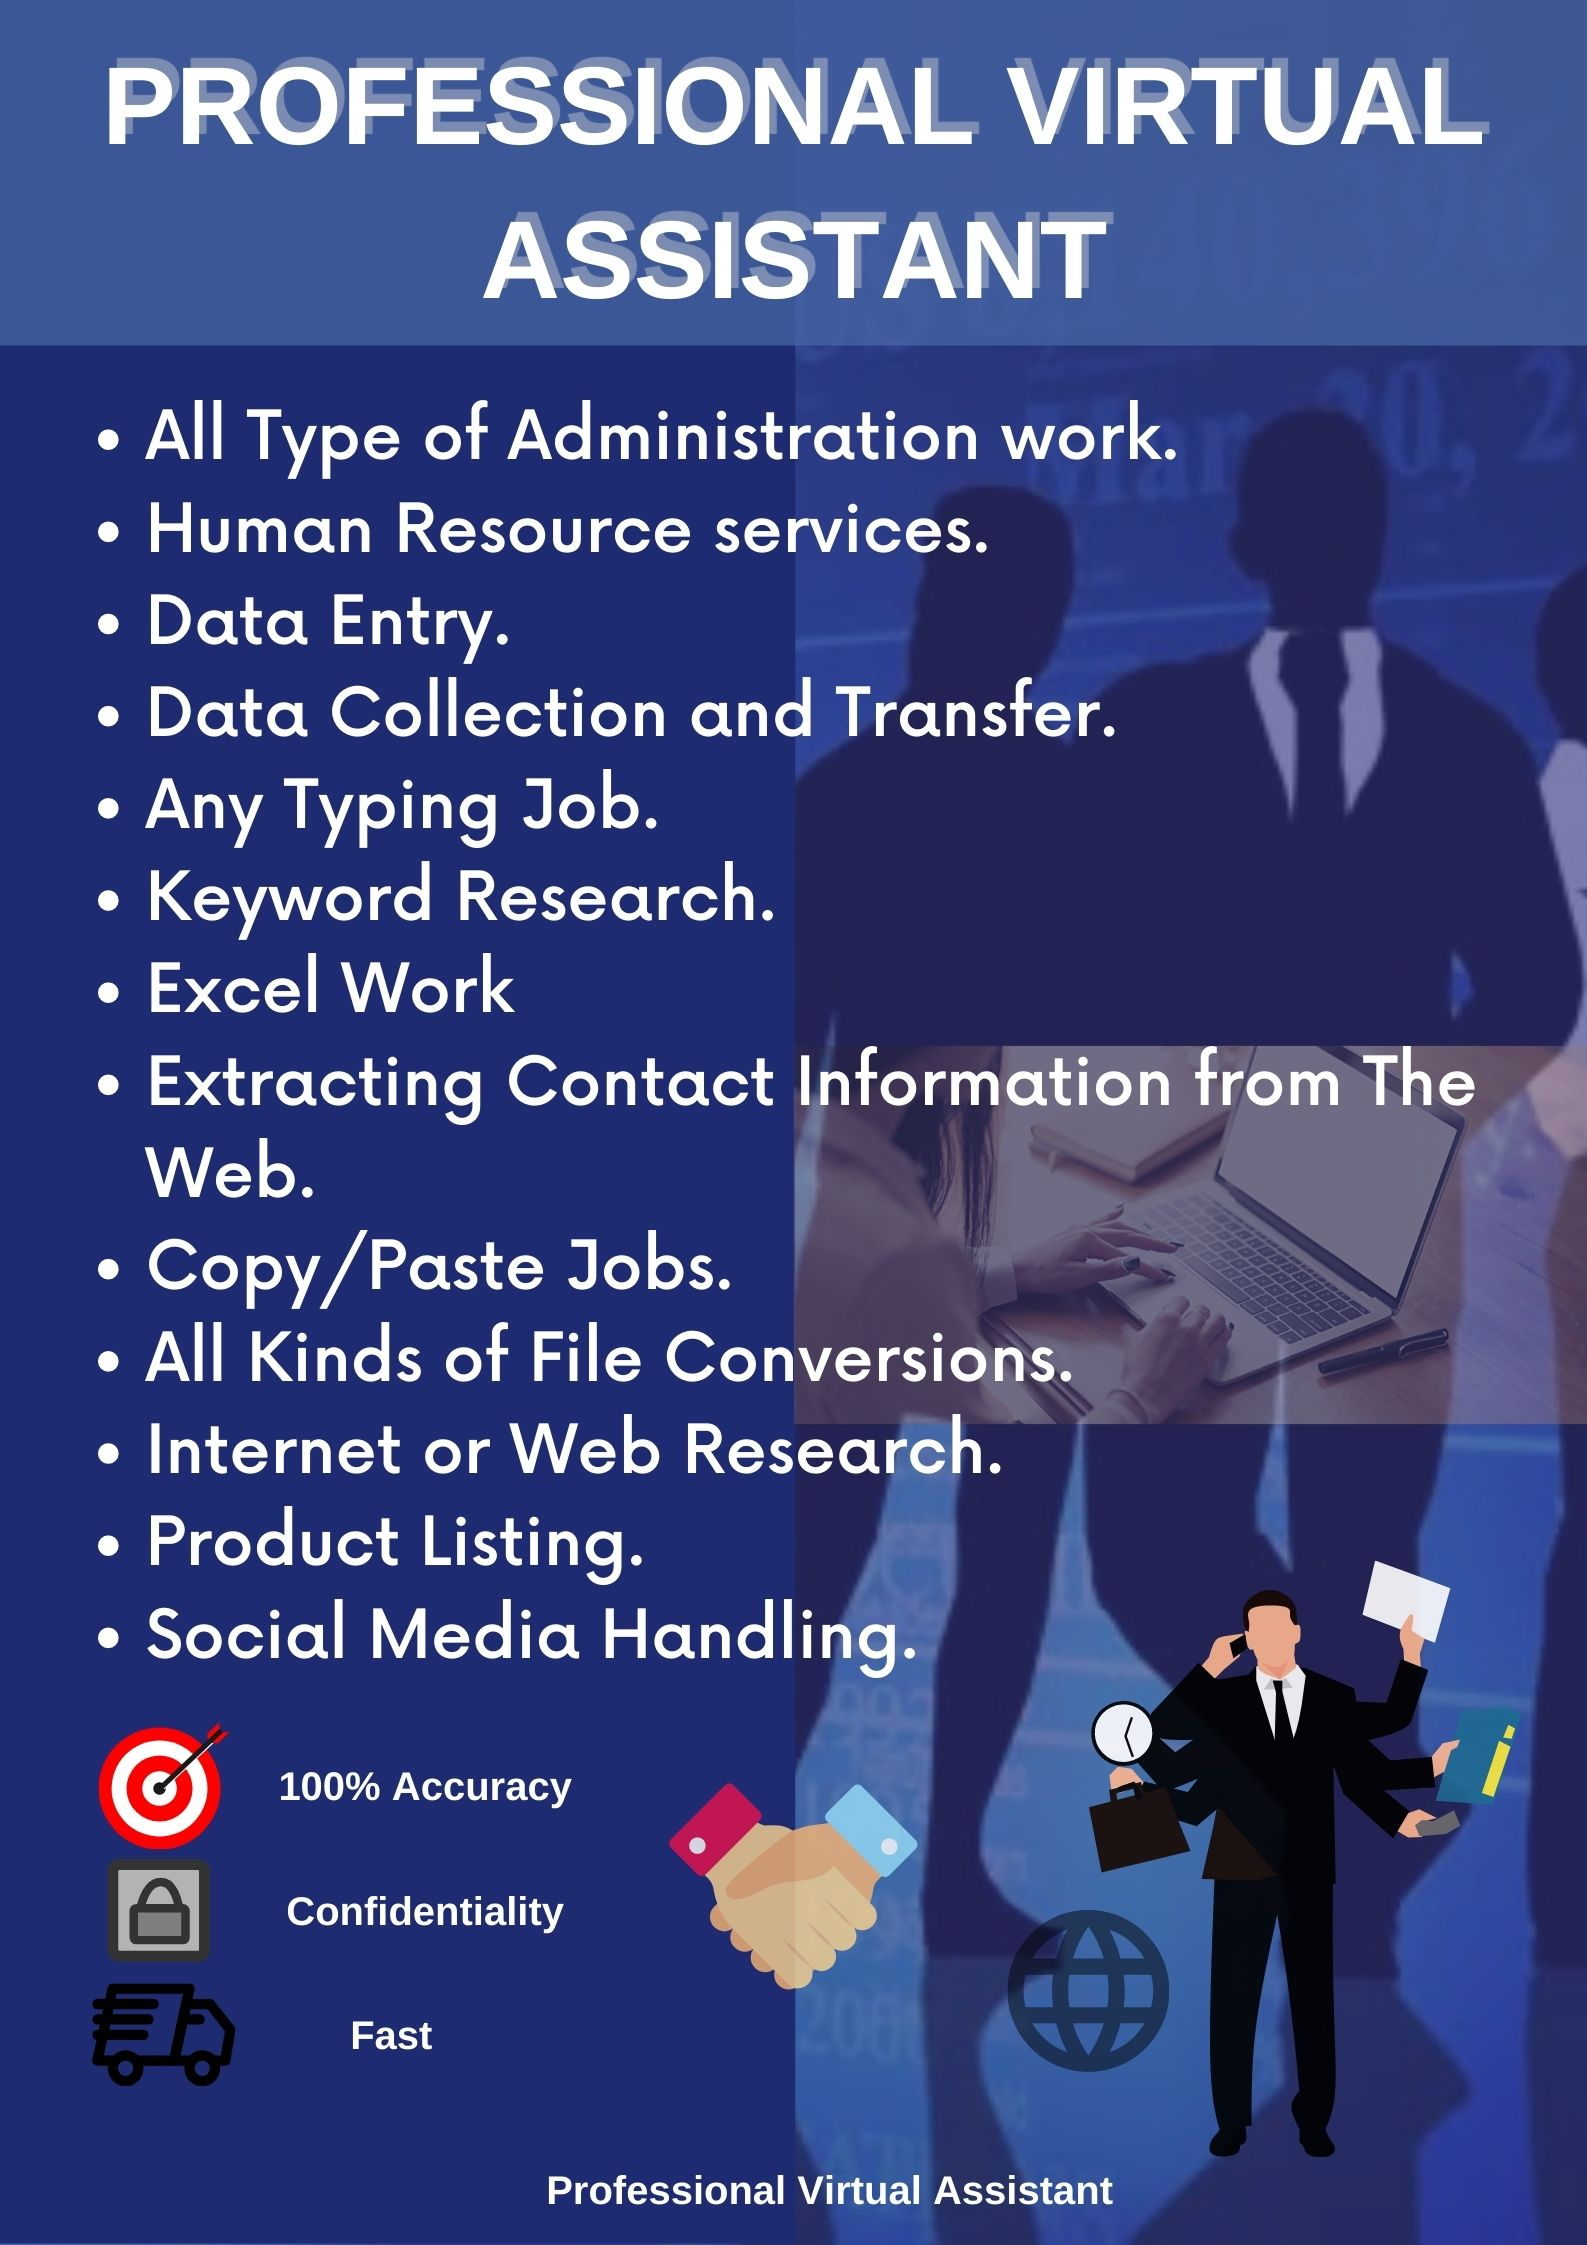 I will be your professional Virtual Assistant,  Data entry,  Data management,  Web Research,  Typing,  HR